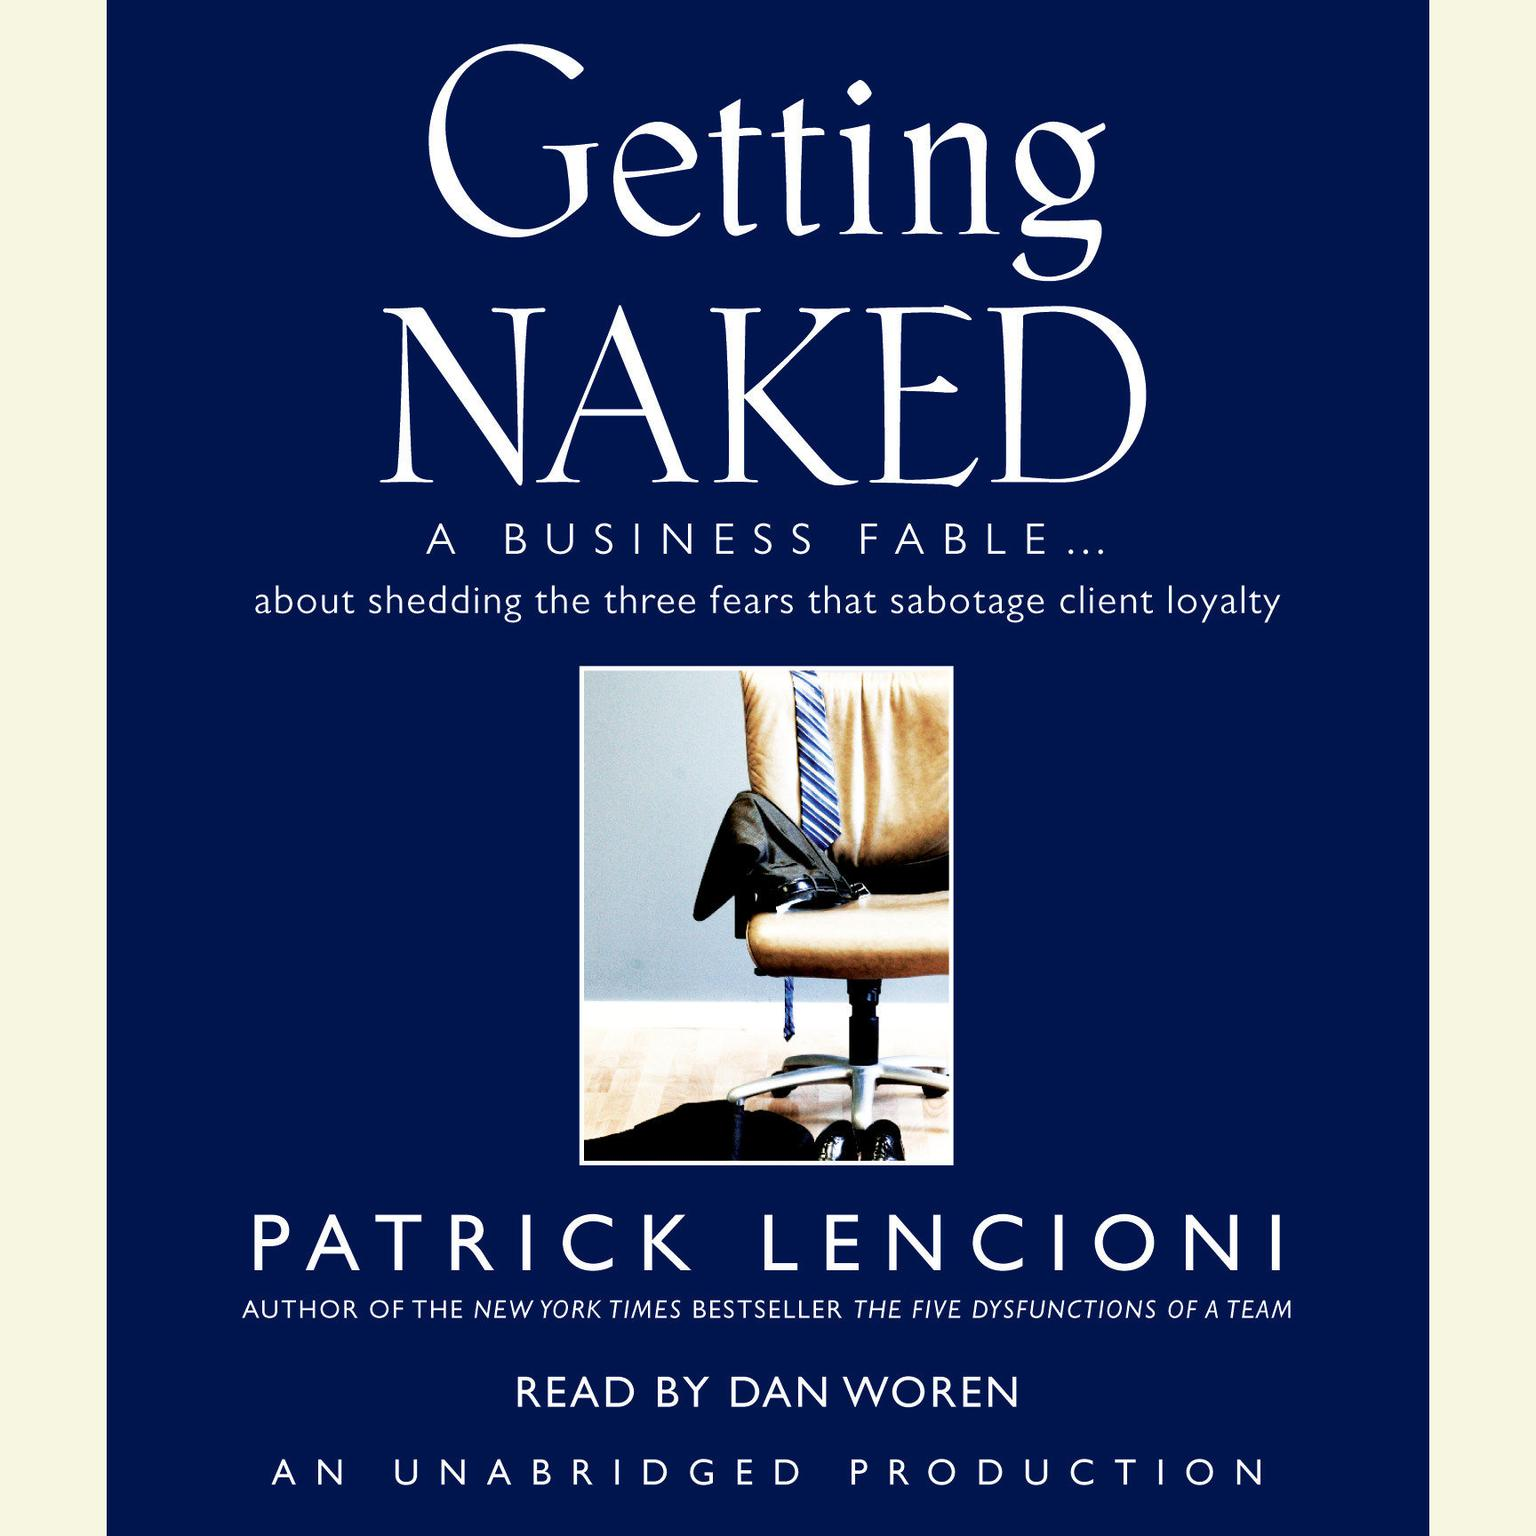 Printable Getting Naked: A Business Fable About Shedding the Three Fears That Sabotage Client Loyalty Audiobook Cover Art